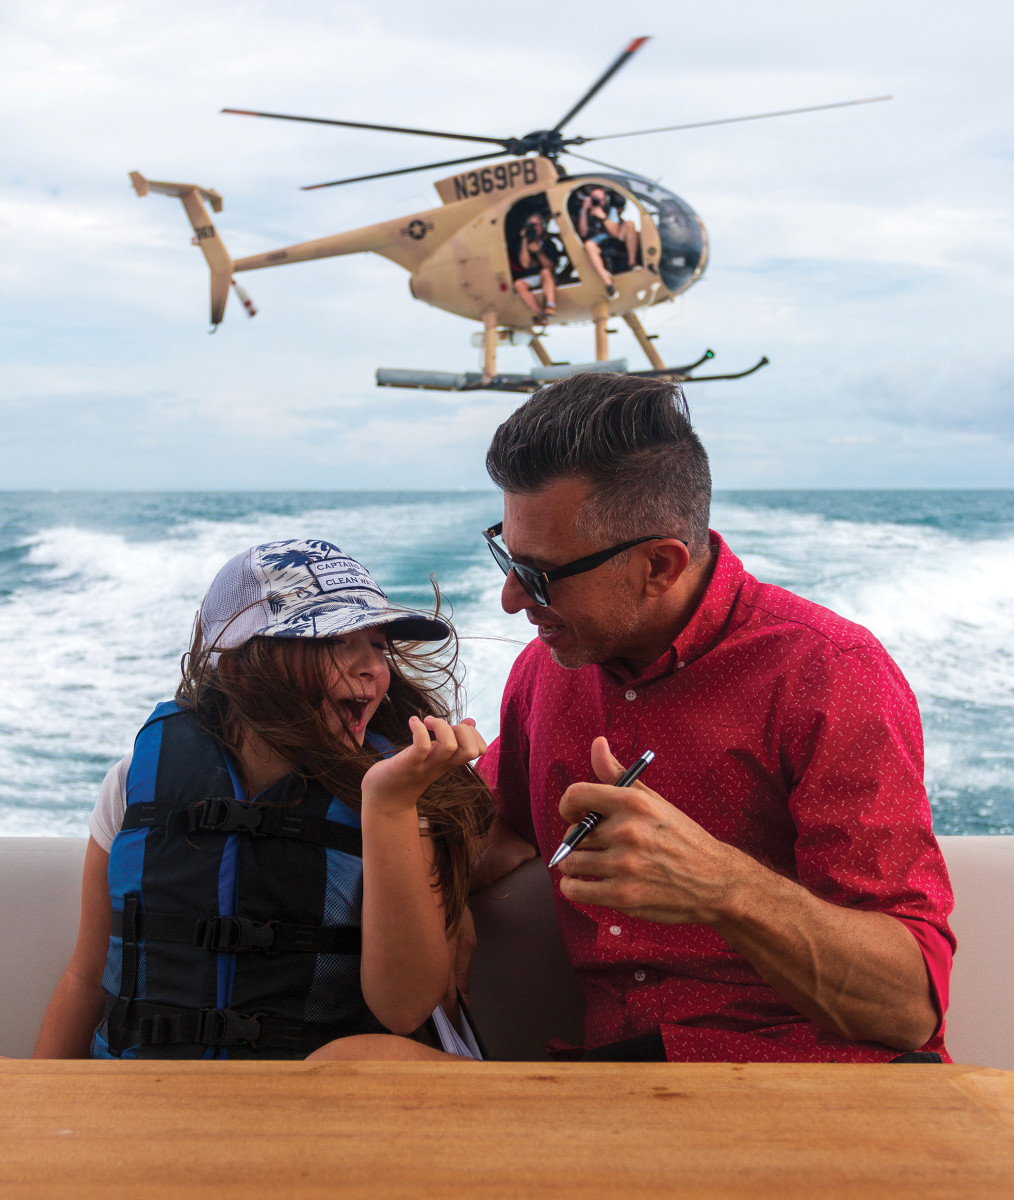 The author has been part of many helicopter shoots but this was by far his favorite, as he was able to share the experience with his daughter.